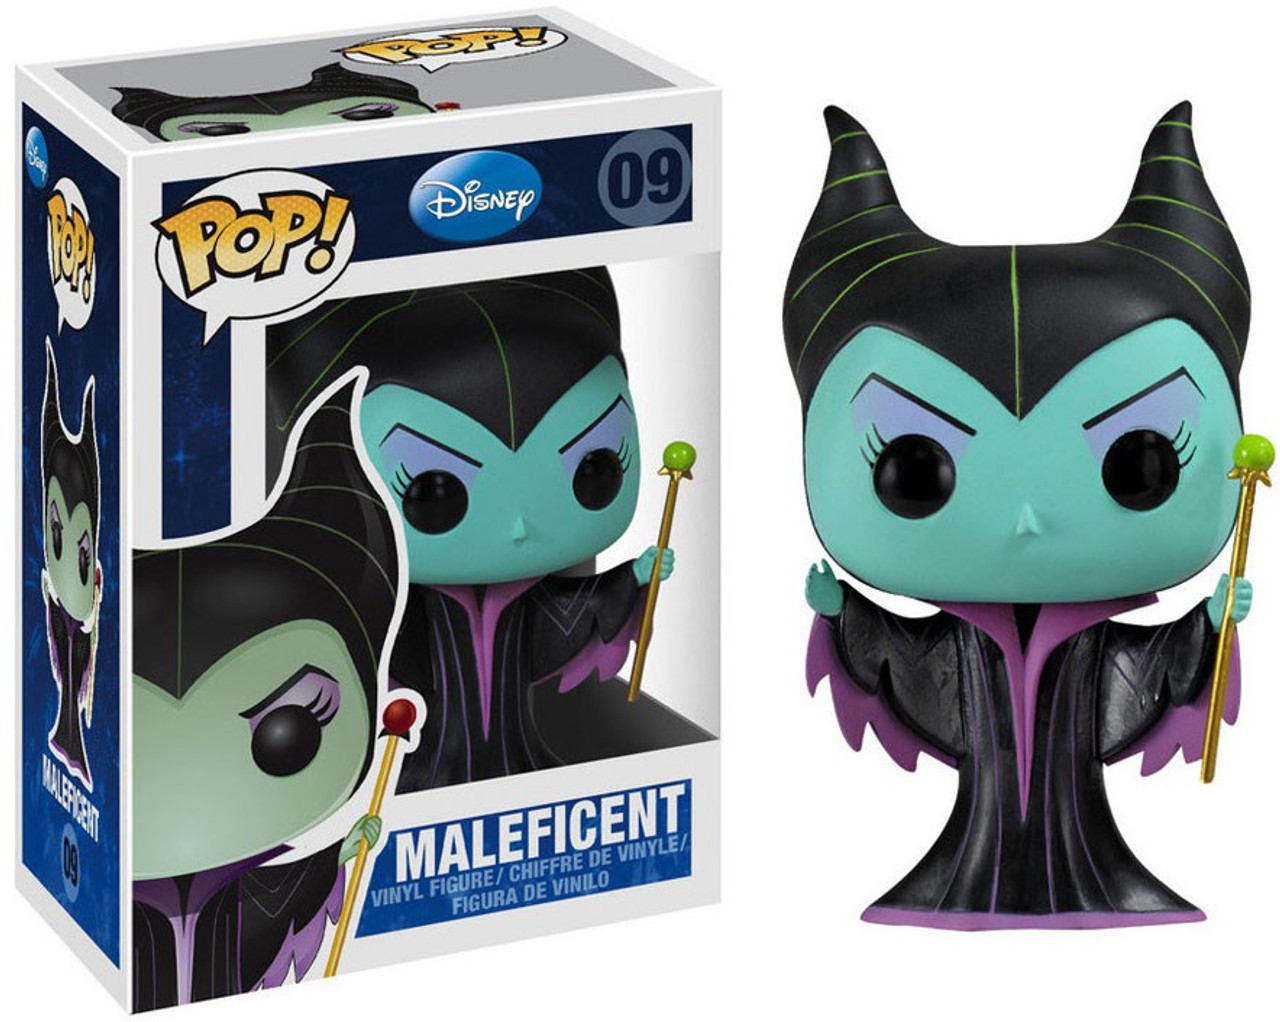 Sleeping Beauty Funko Pop Disney Maleficent Vinyl Figure 09 Sleeping Beauty